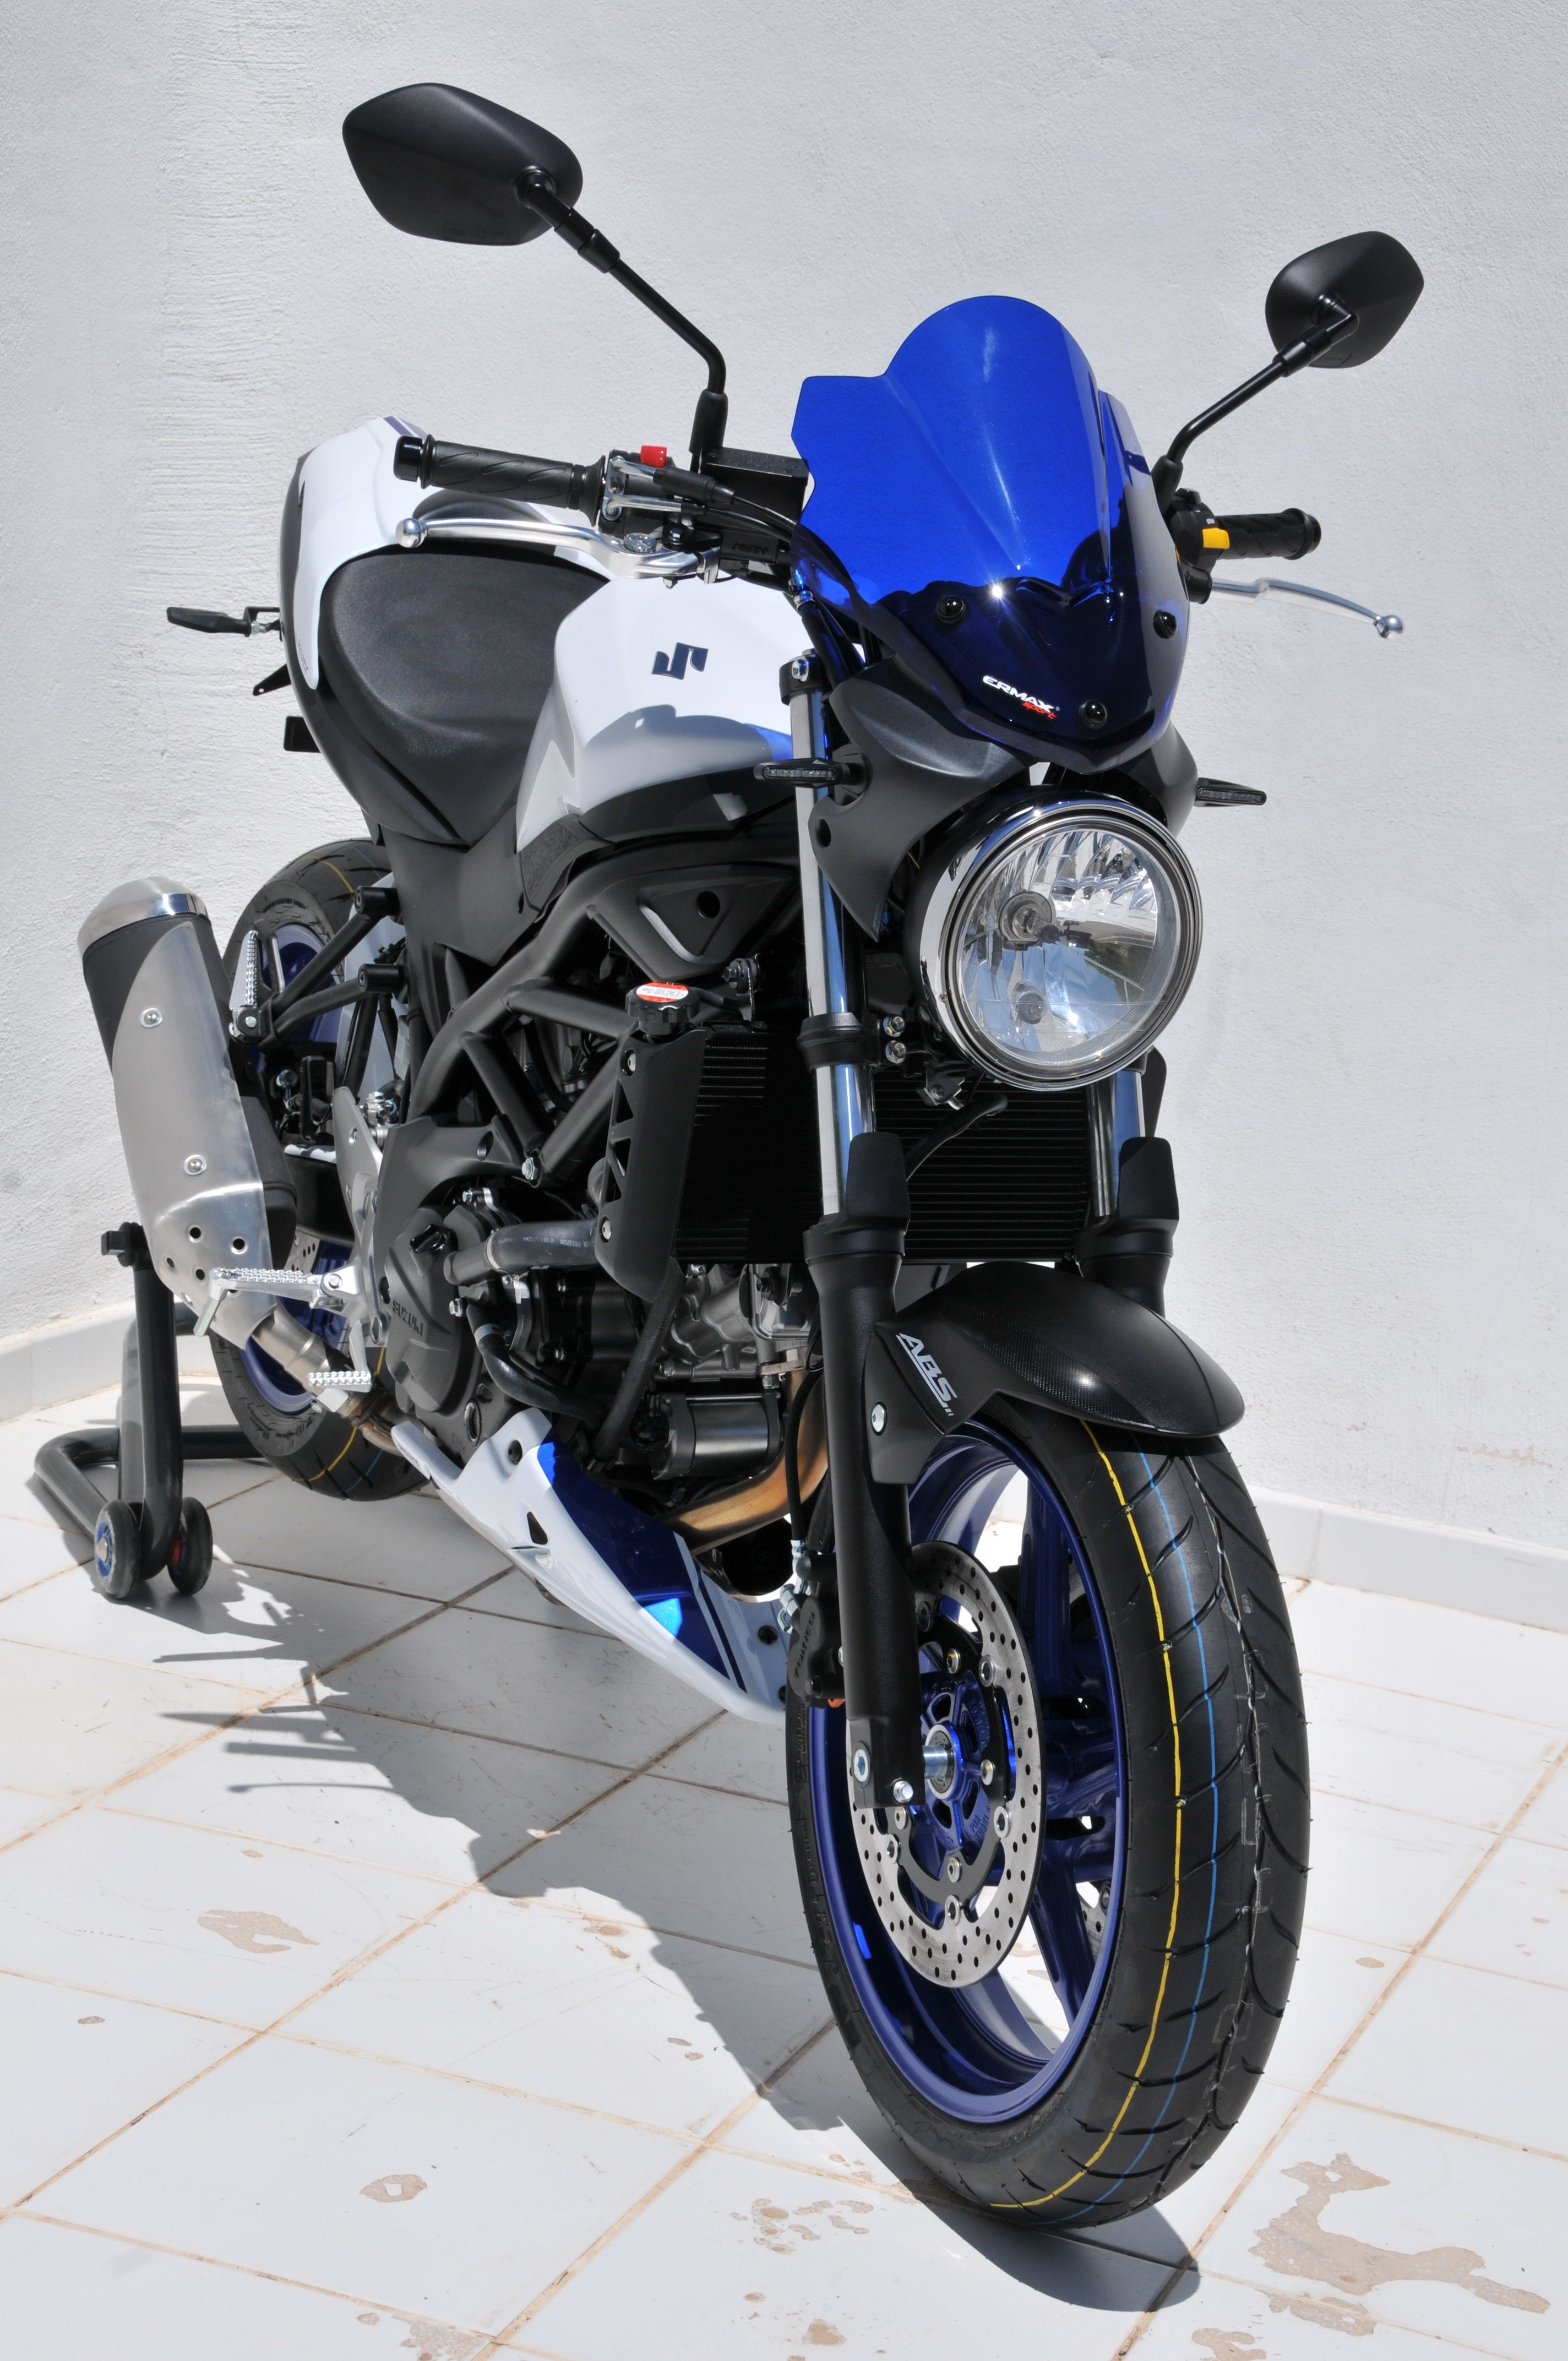 front view with blue nose screen belly pan suzuki sv. Black Bedroom Furniture Sets. Home Design Ideas